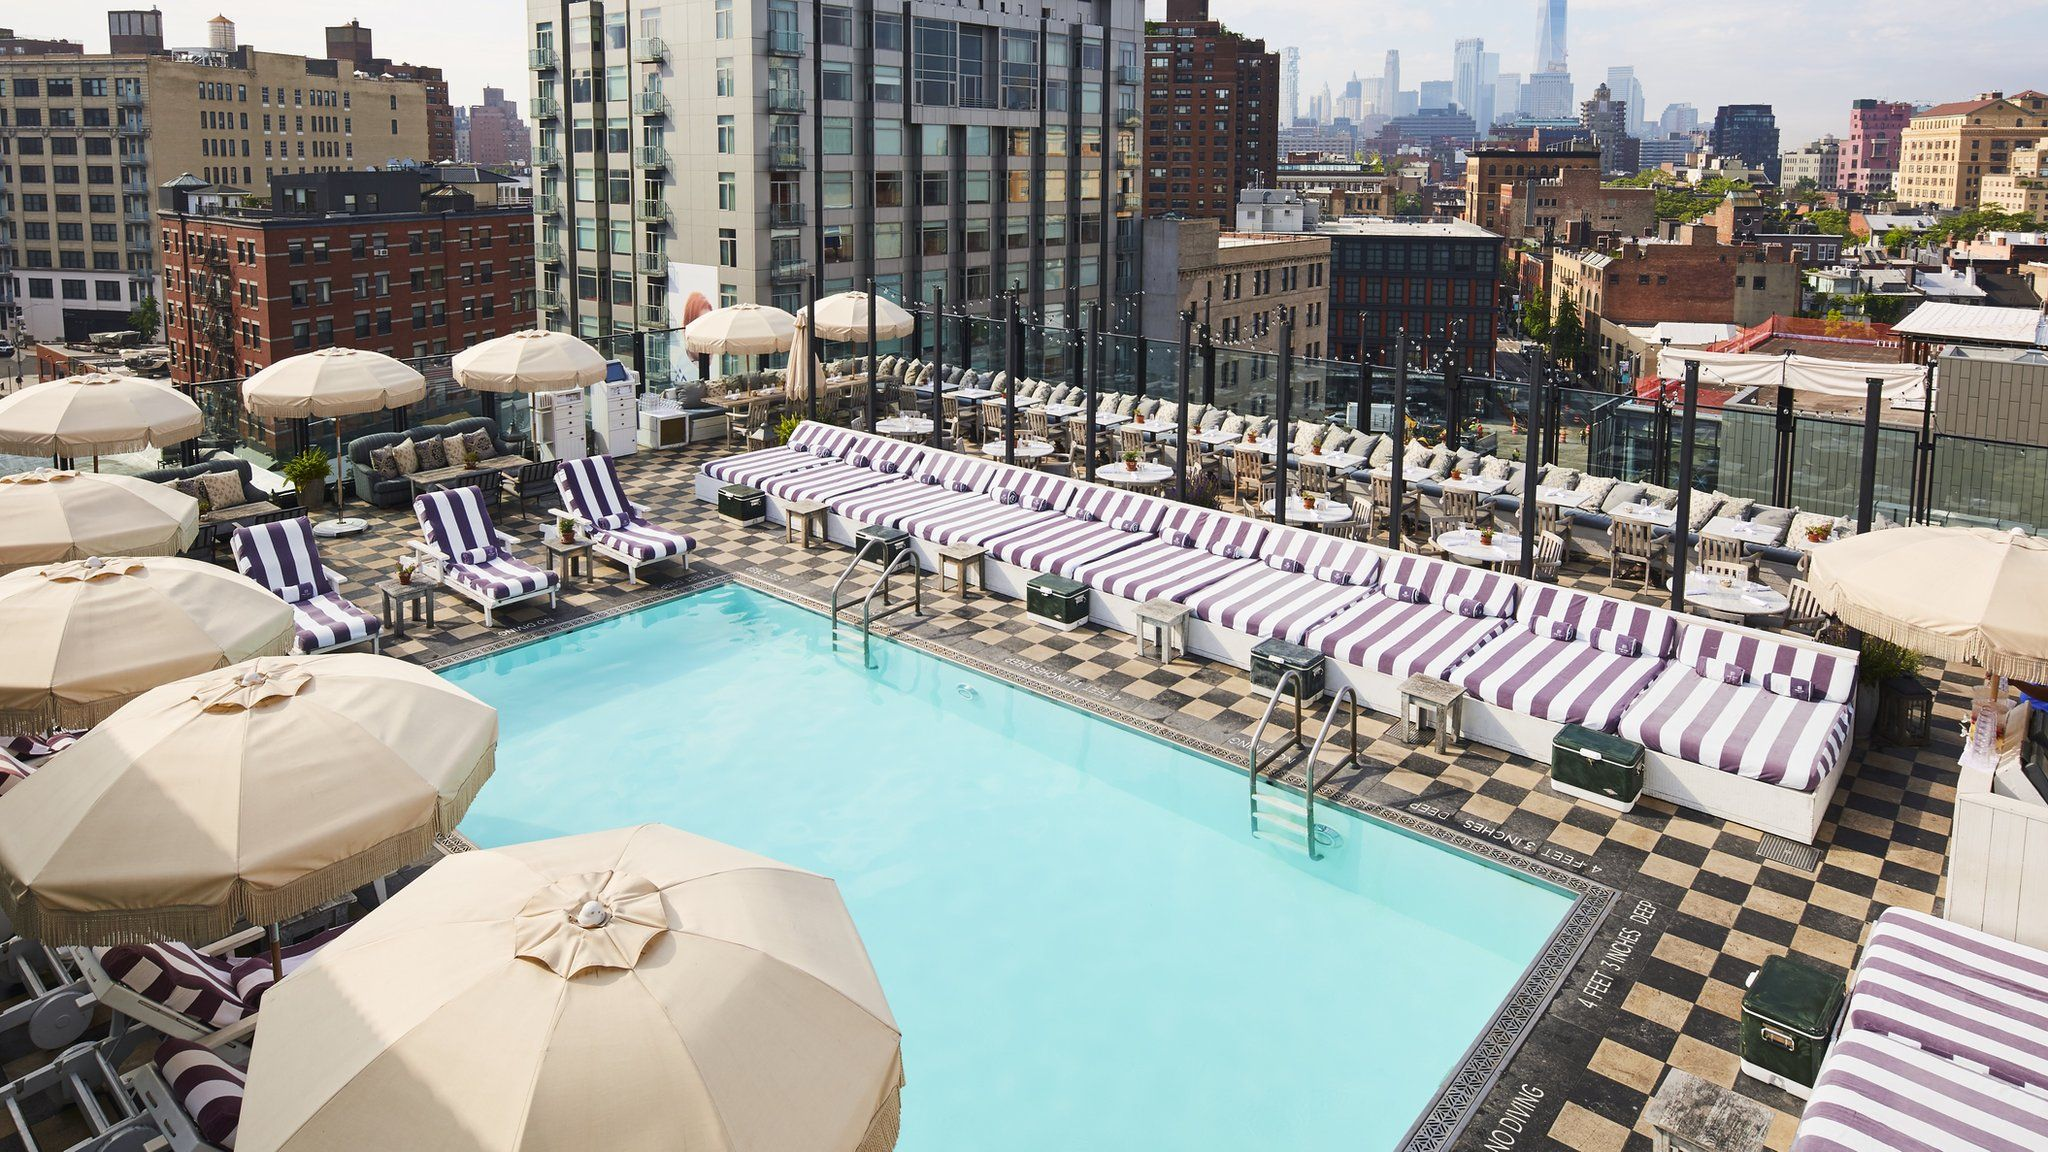 Soho House New York has a rooftop pool